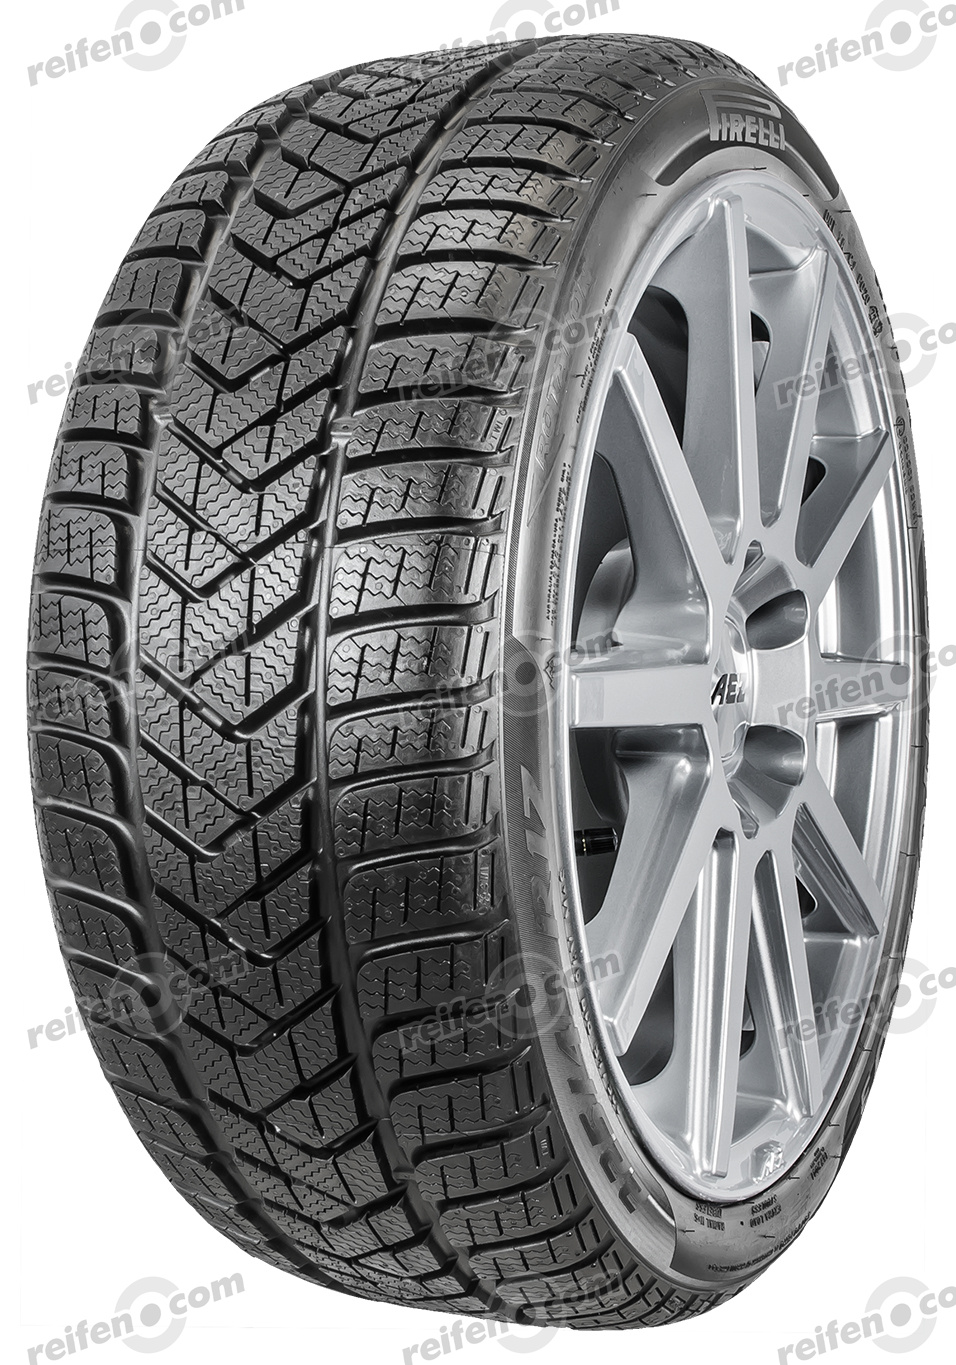 215/55 R17 98H Winter Sottozero 3 XL KS  Winter Sottozero 3 XL KS